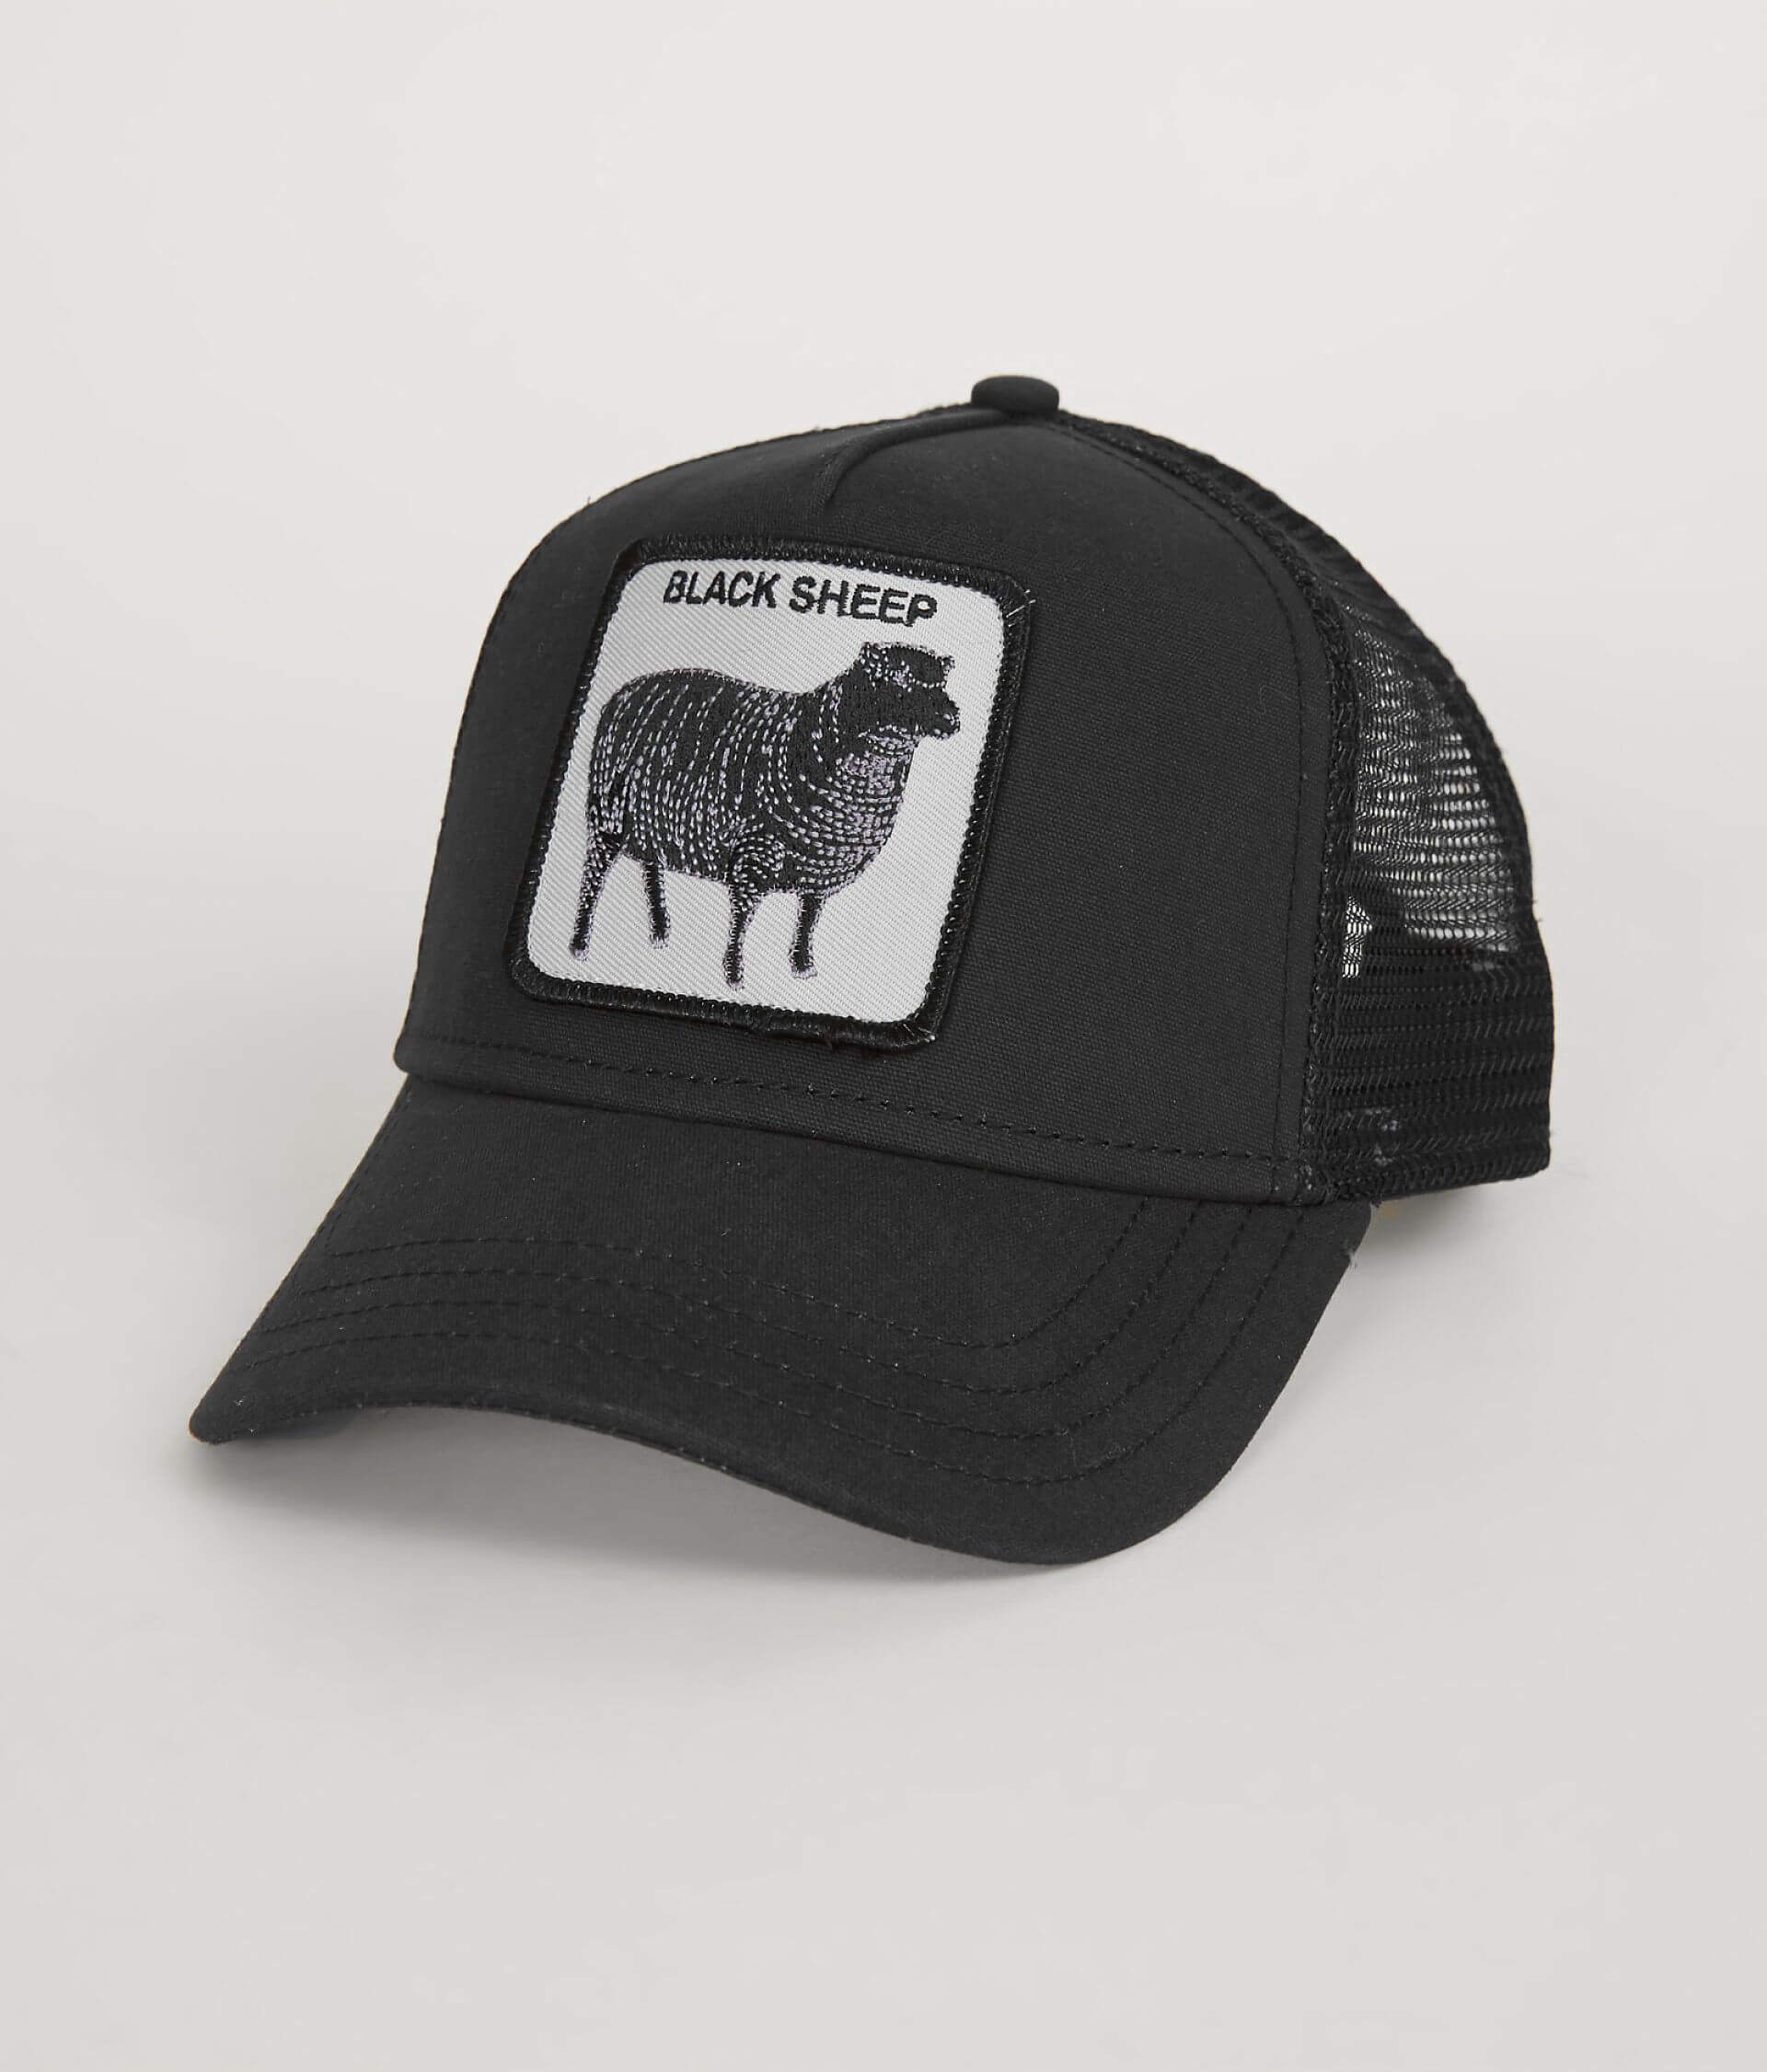 7d48e558b4cac Goorin Brothers Black Sheep Trucker Hat - Men s Hats in Black